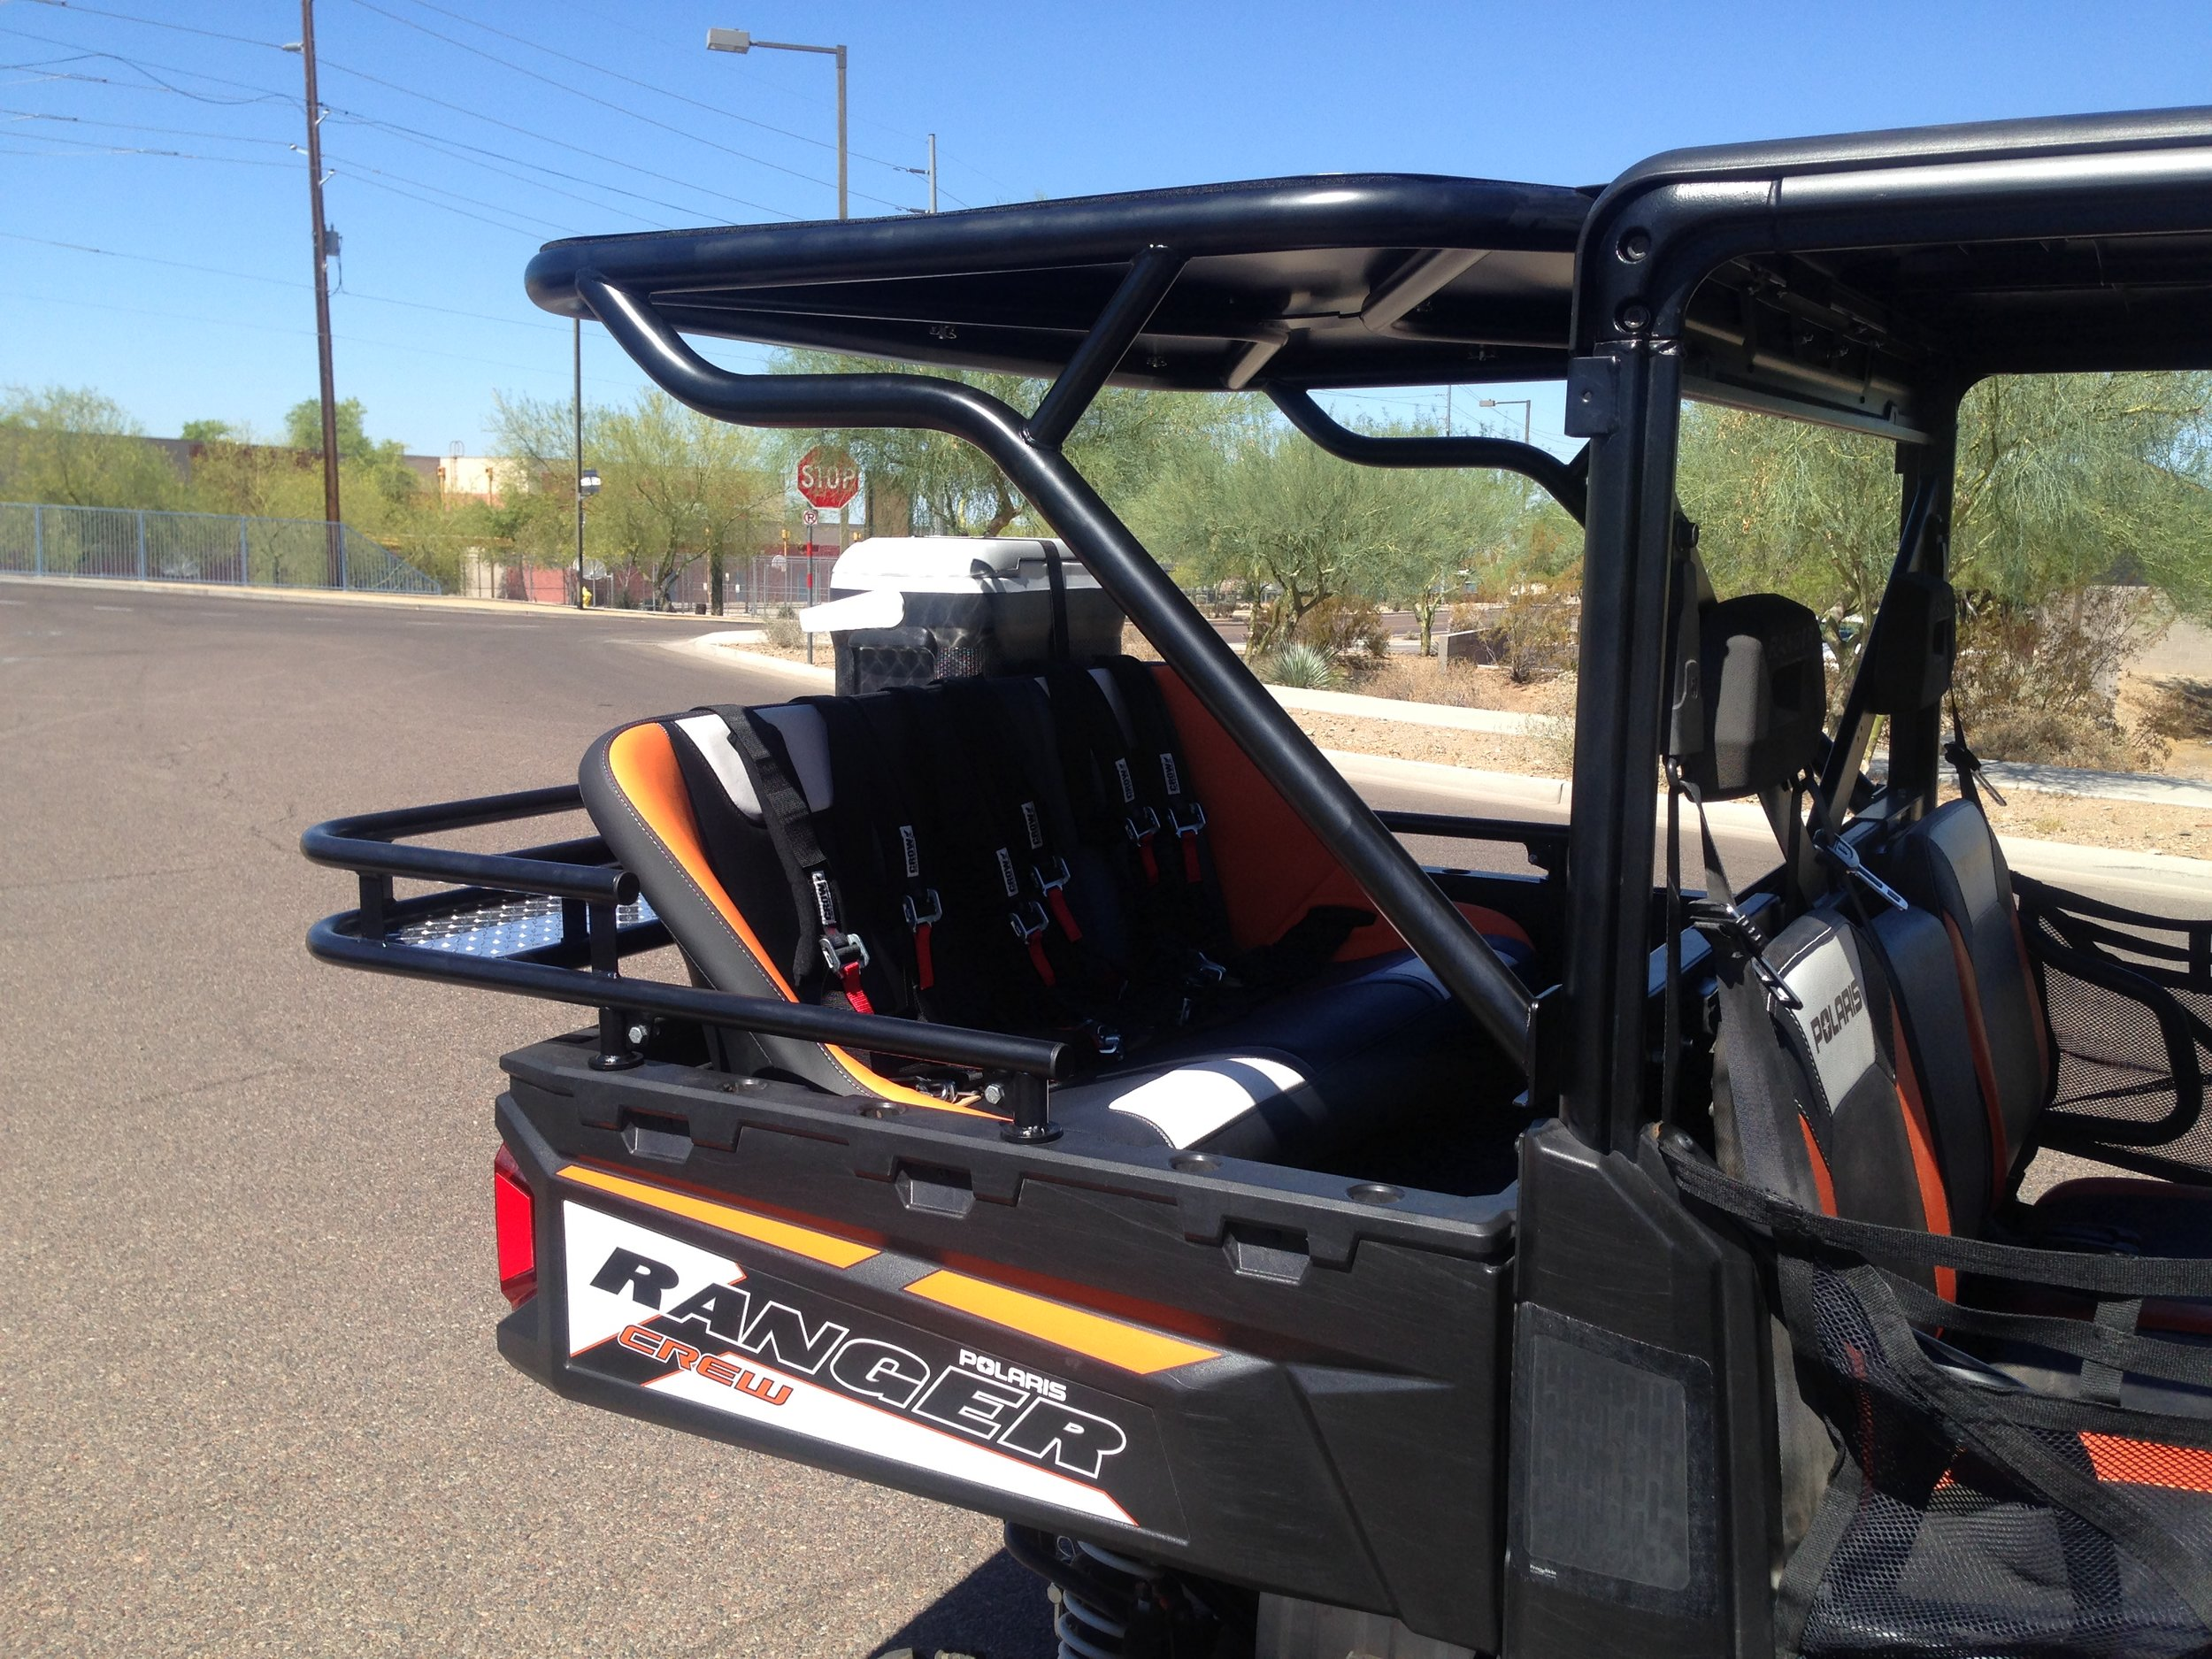 XP900 Halo Cage for 2015 Ranger Crew